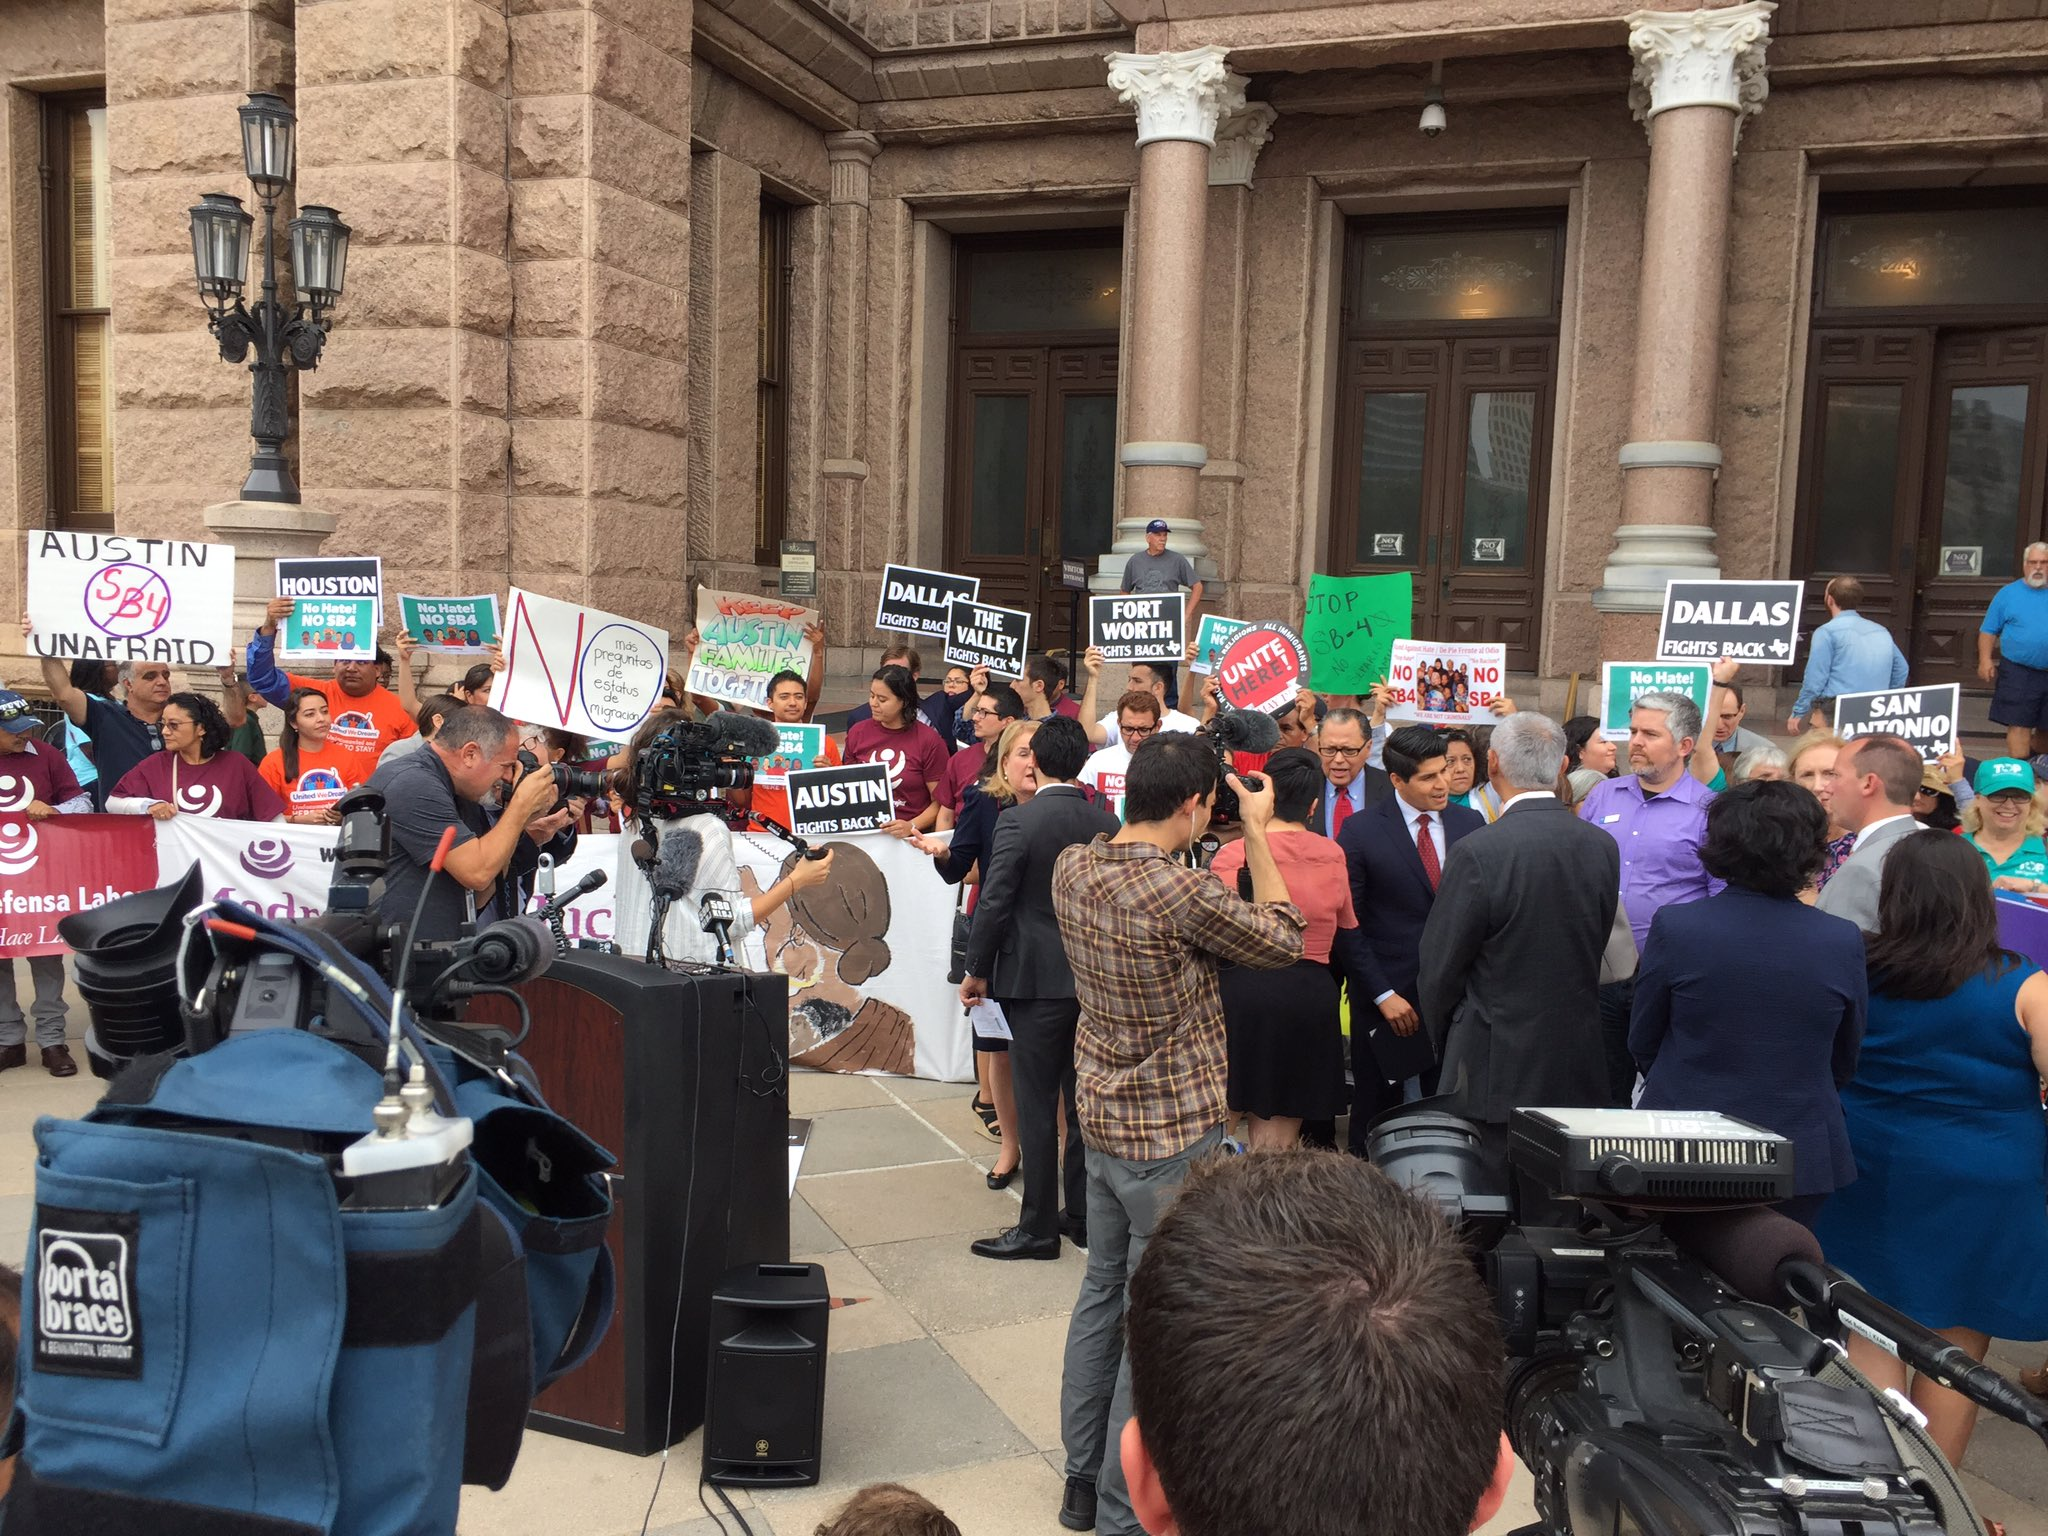 RIGHT NOW: Elected leaders from #SATX #ATX and other #texas cities take stand against #SB4, including suing state. #txlege https://t.co/kDXCIdWHSb